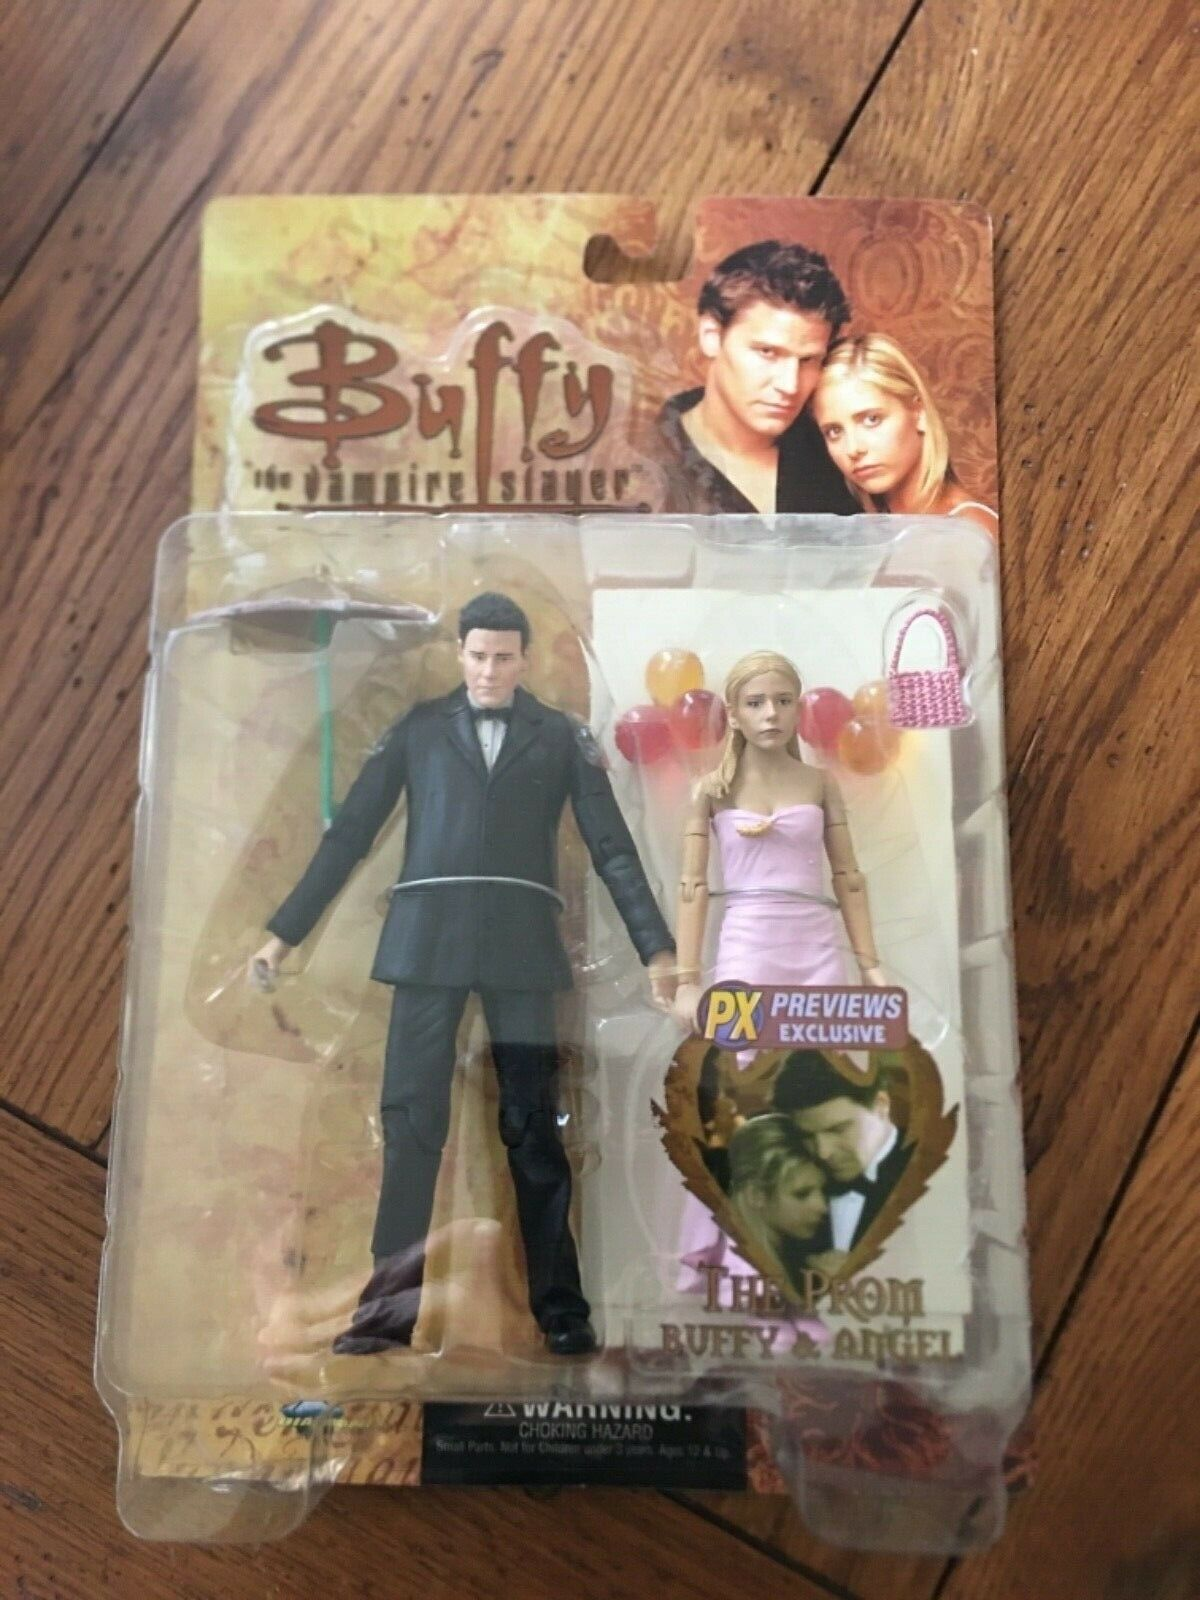 Buffy the Vampire Slayer action figures Prom Buffy and Angel NIP